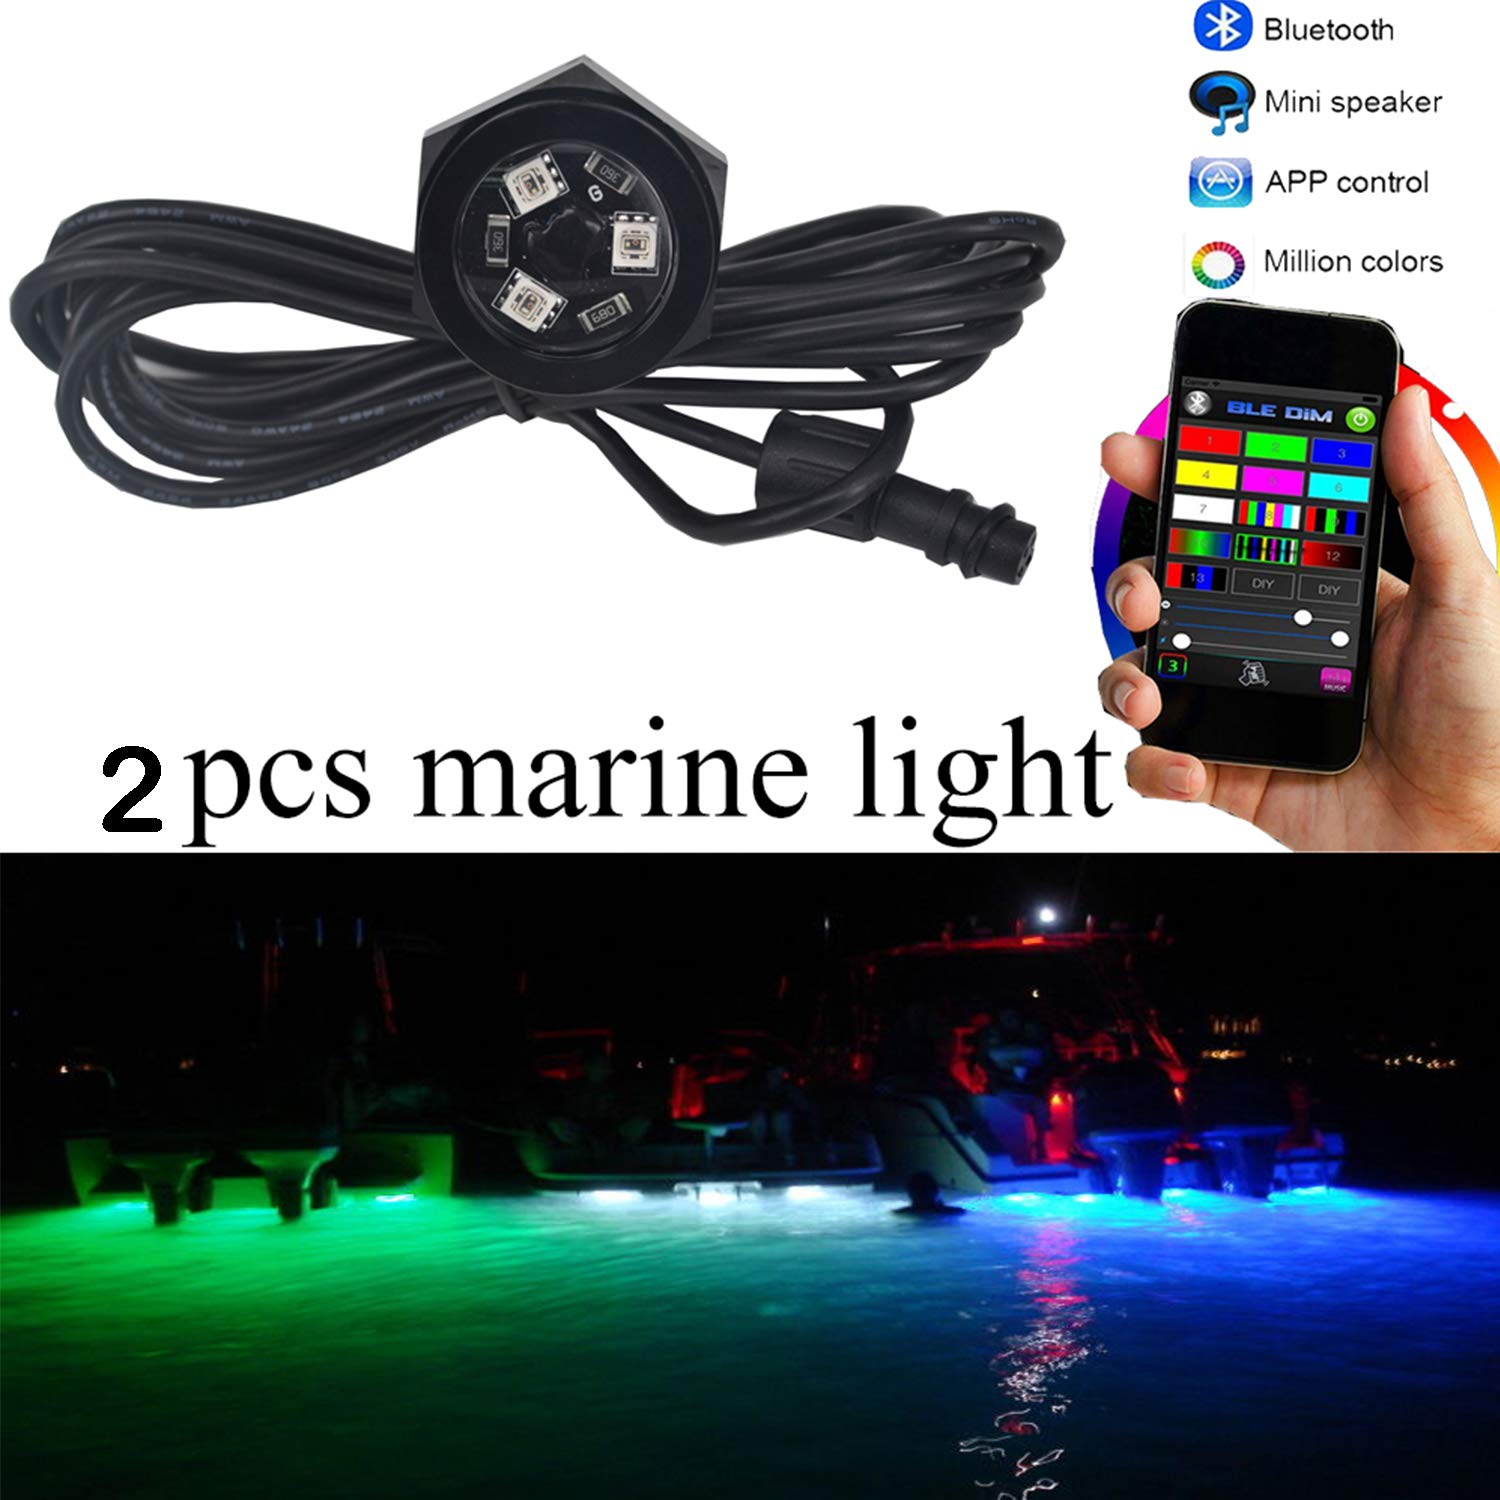 NBWDY 2Pcs LED Boat Drain Plug Underwater Light, 3X3W/12V, 50000hr Lifespan,Garber-Fishing, Swimming, Diving, 1/2'' NPT,RGB with Bluetooth Remote Controller by NBWDY